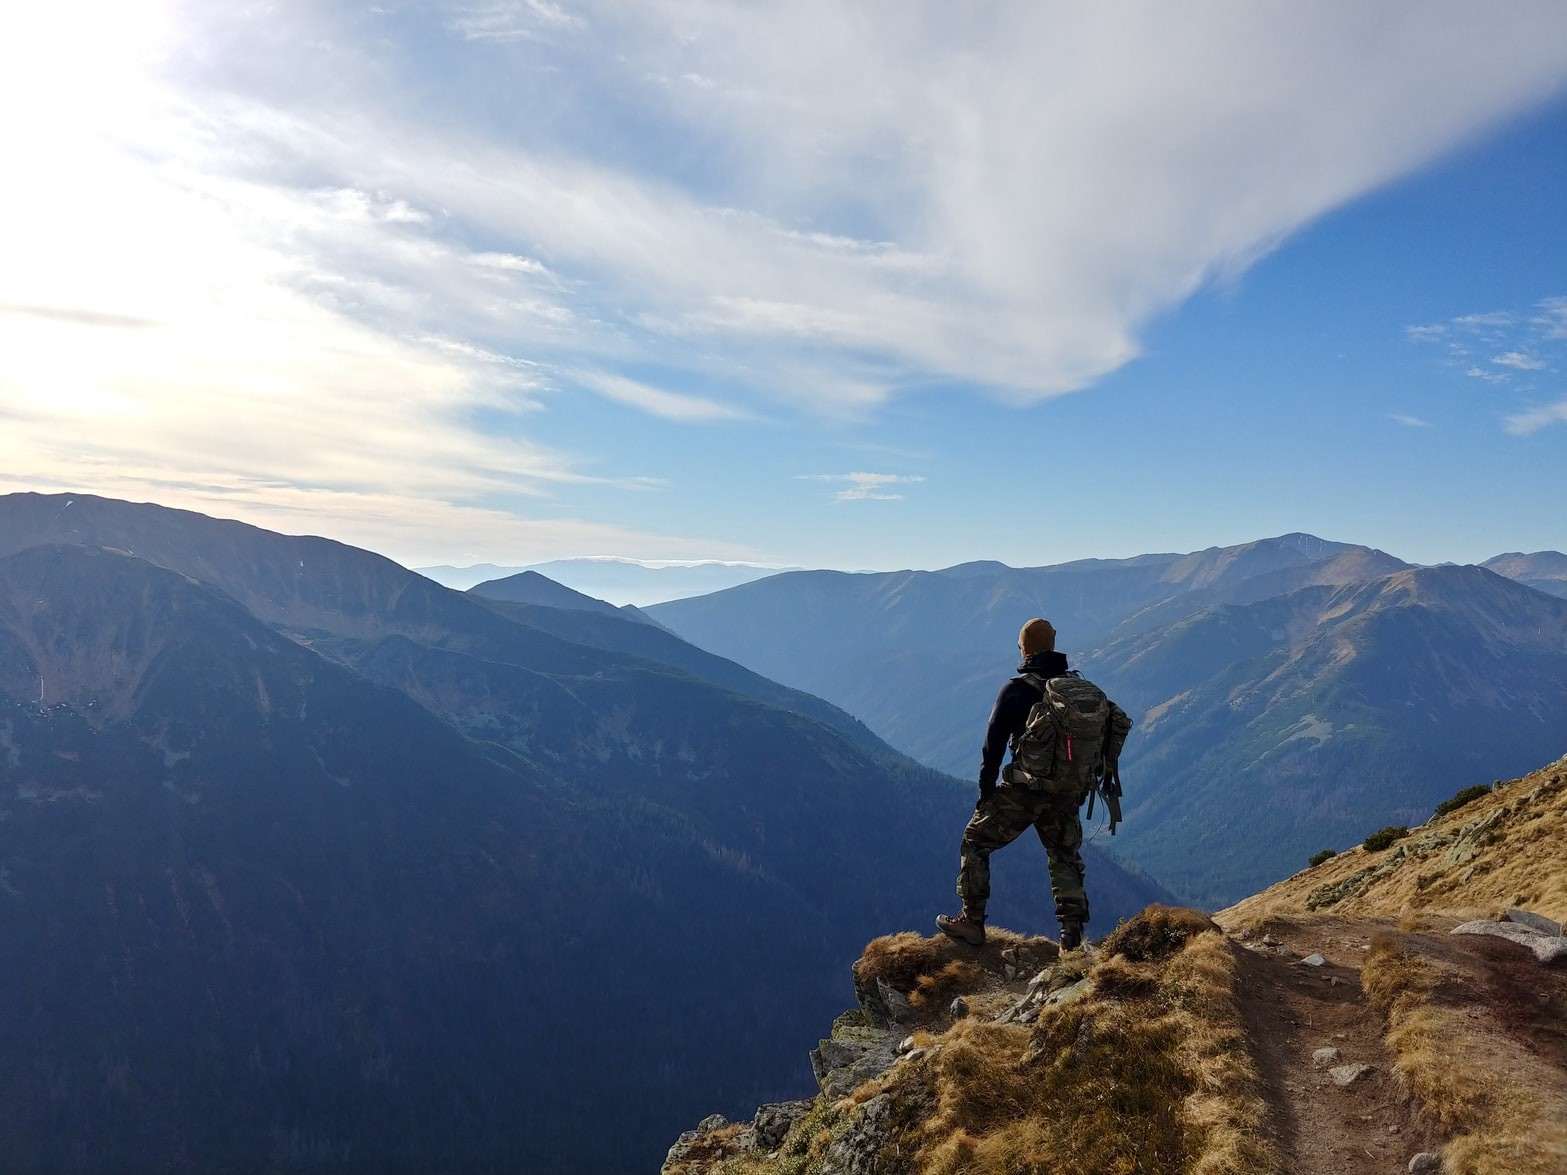 Hiker standing on moountain looking at a scenic valley and mountain scape